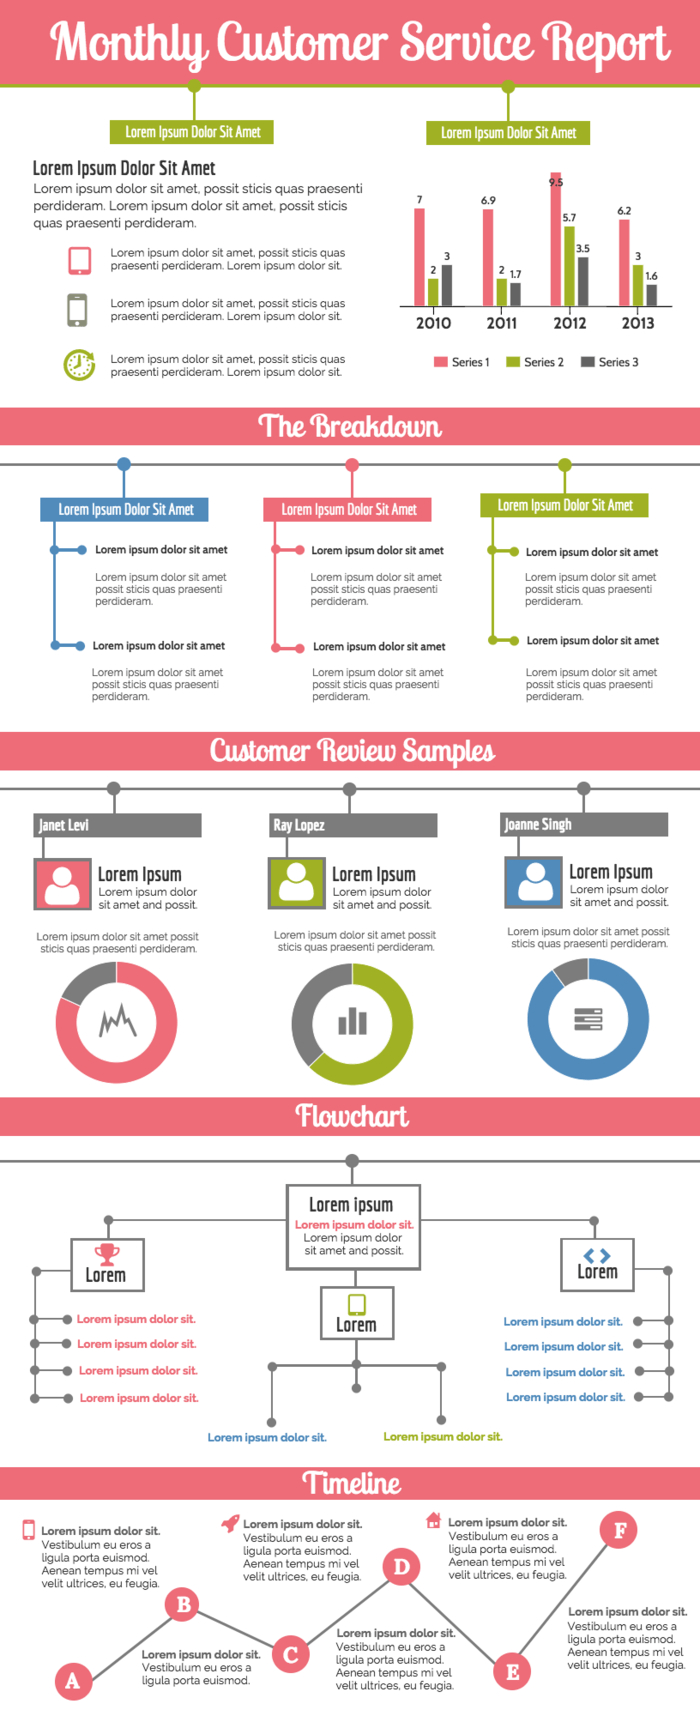 Monthly Customer Service Report Template - Venngage Within Service Review Report Template